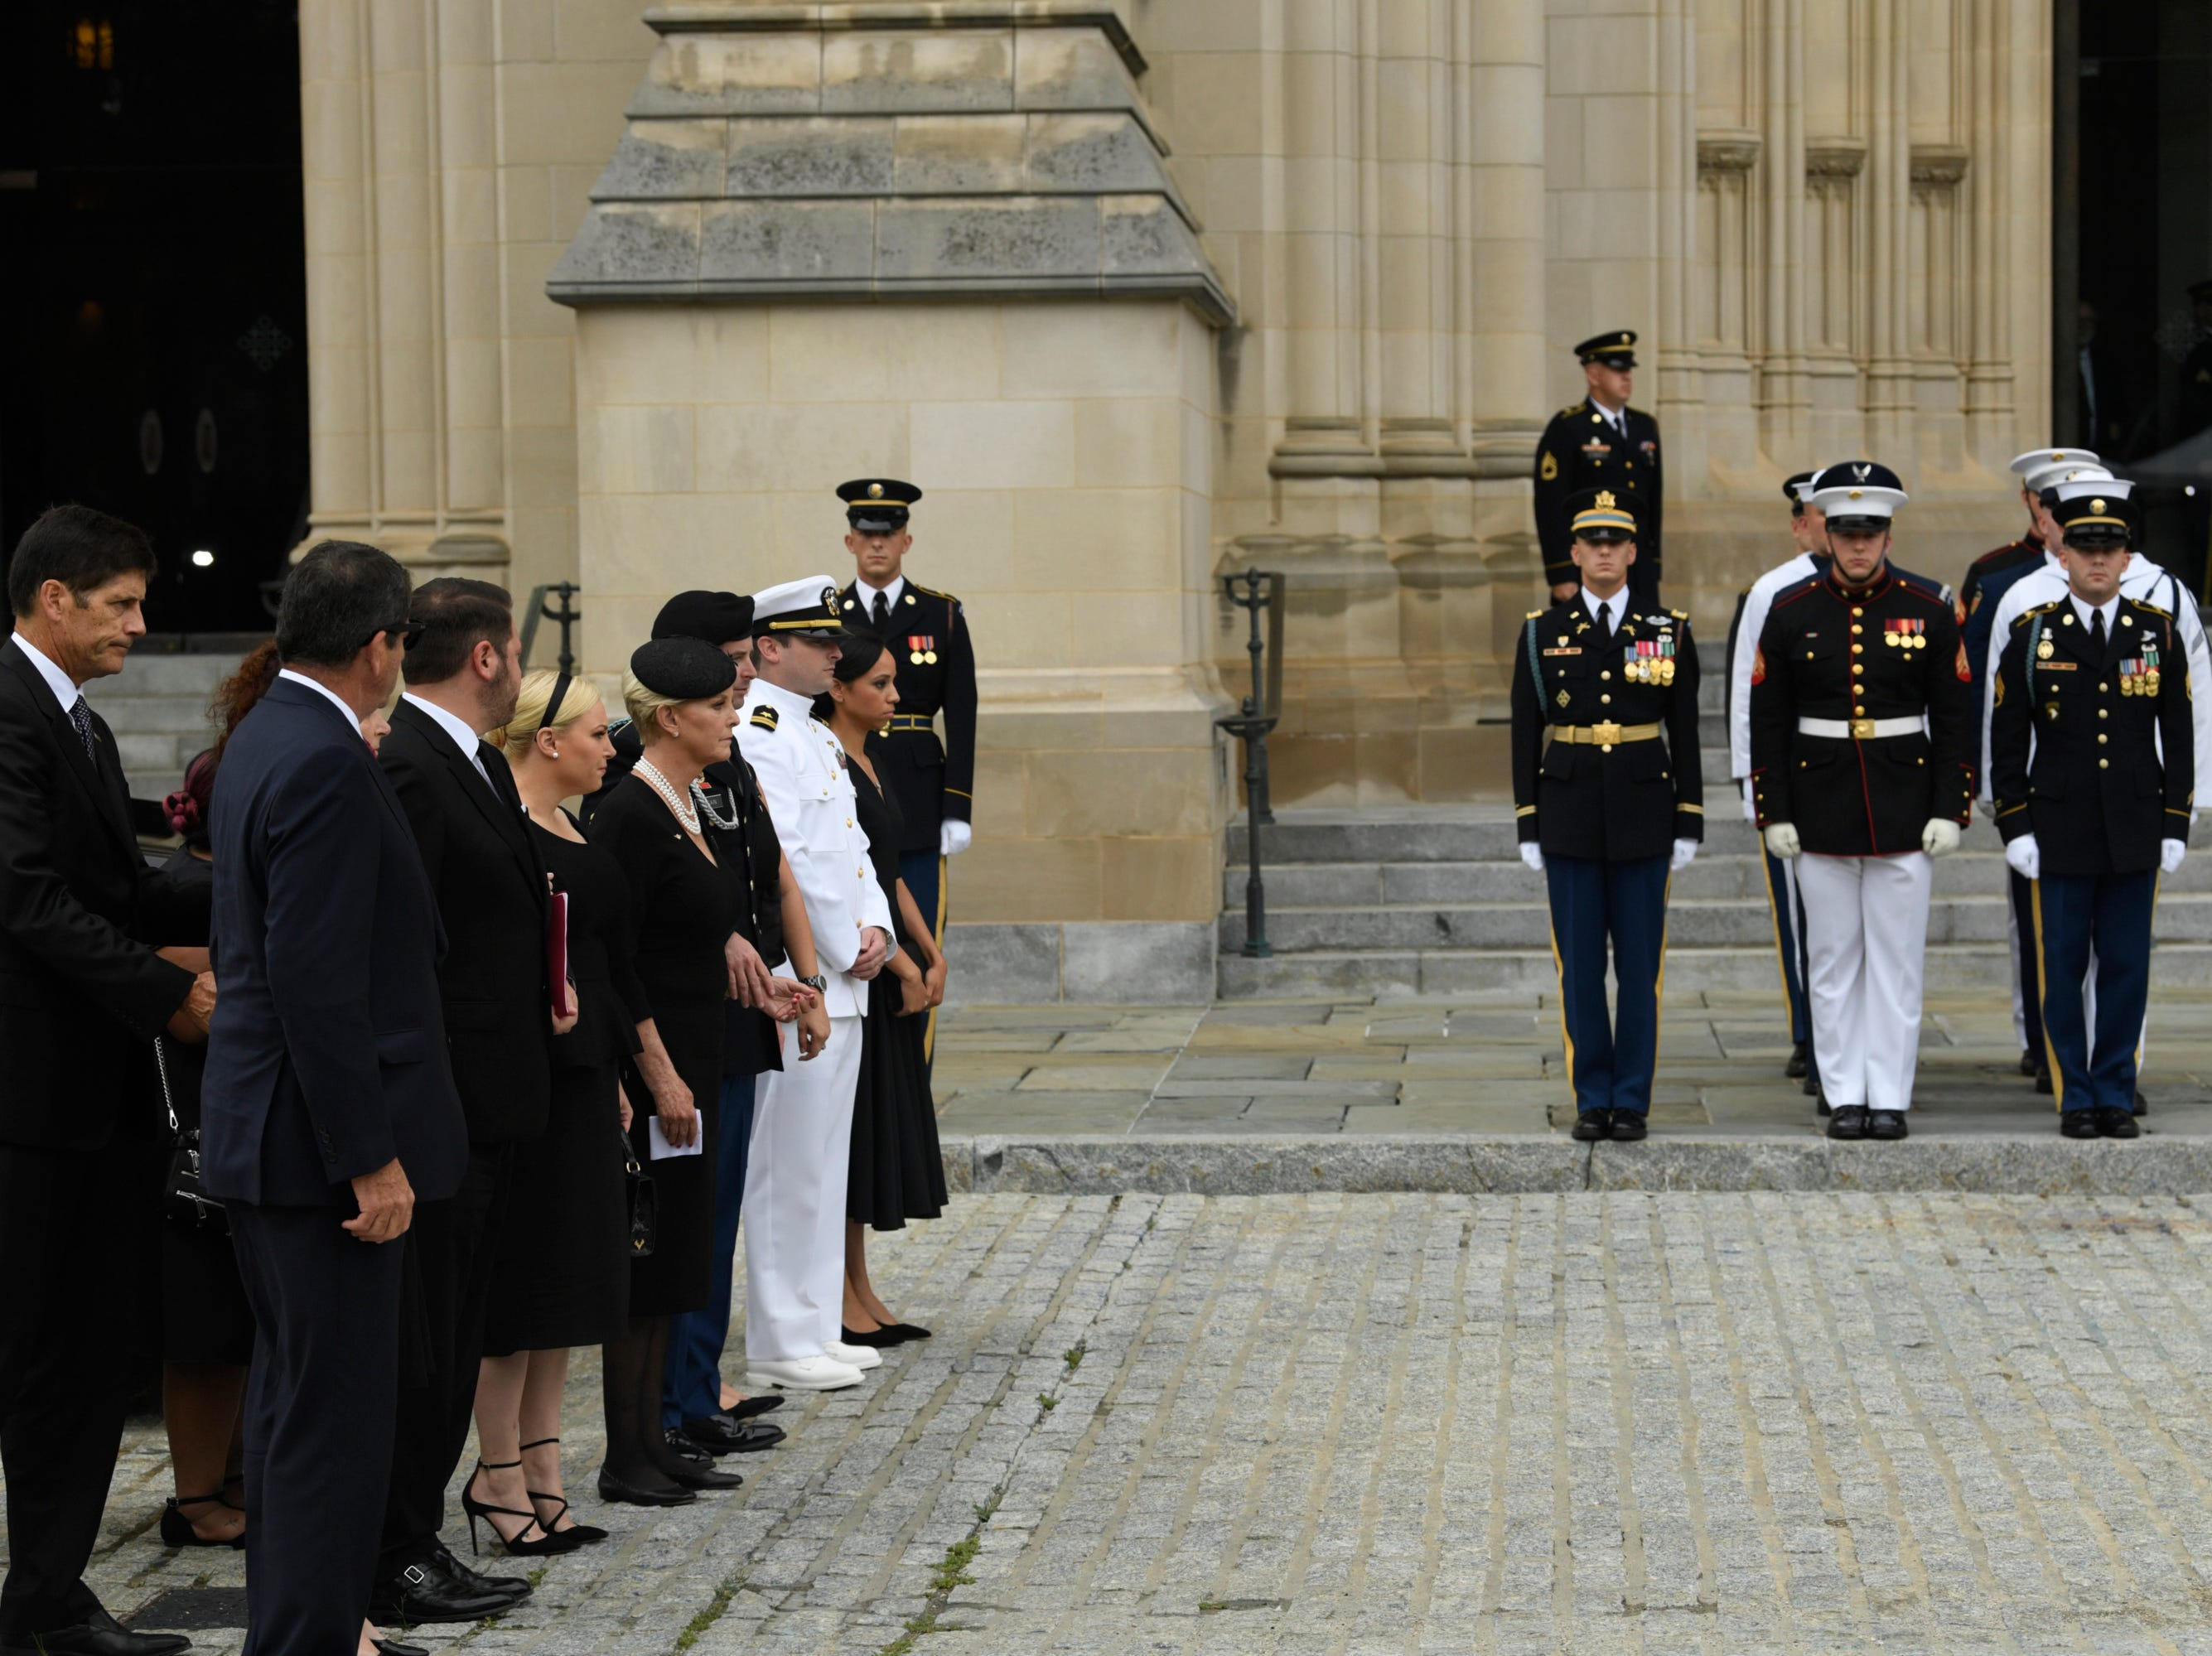 9/1/18 9:41:39 AM -- Washington, DC, U.S.A  -- Members of the McCain family watch as John McCainÕs casket is carried into the National Cathedral in Washington for a memorial service on Sept. 1, 2018. Sen. McCain died on Aug. 25. --    Photo by Jasper Colt, USA TODAY Staff